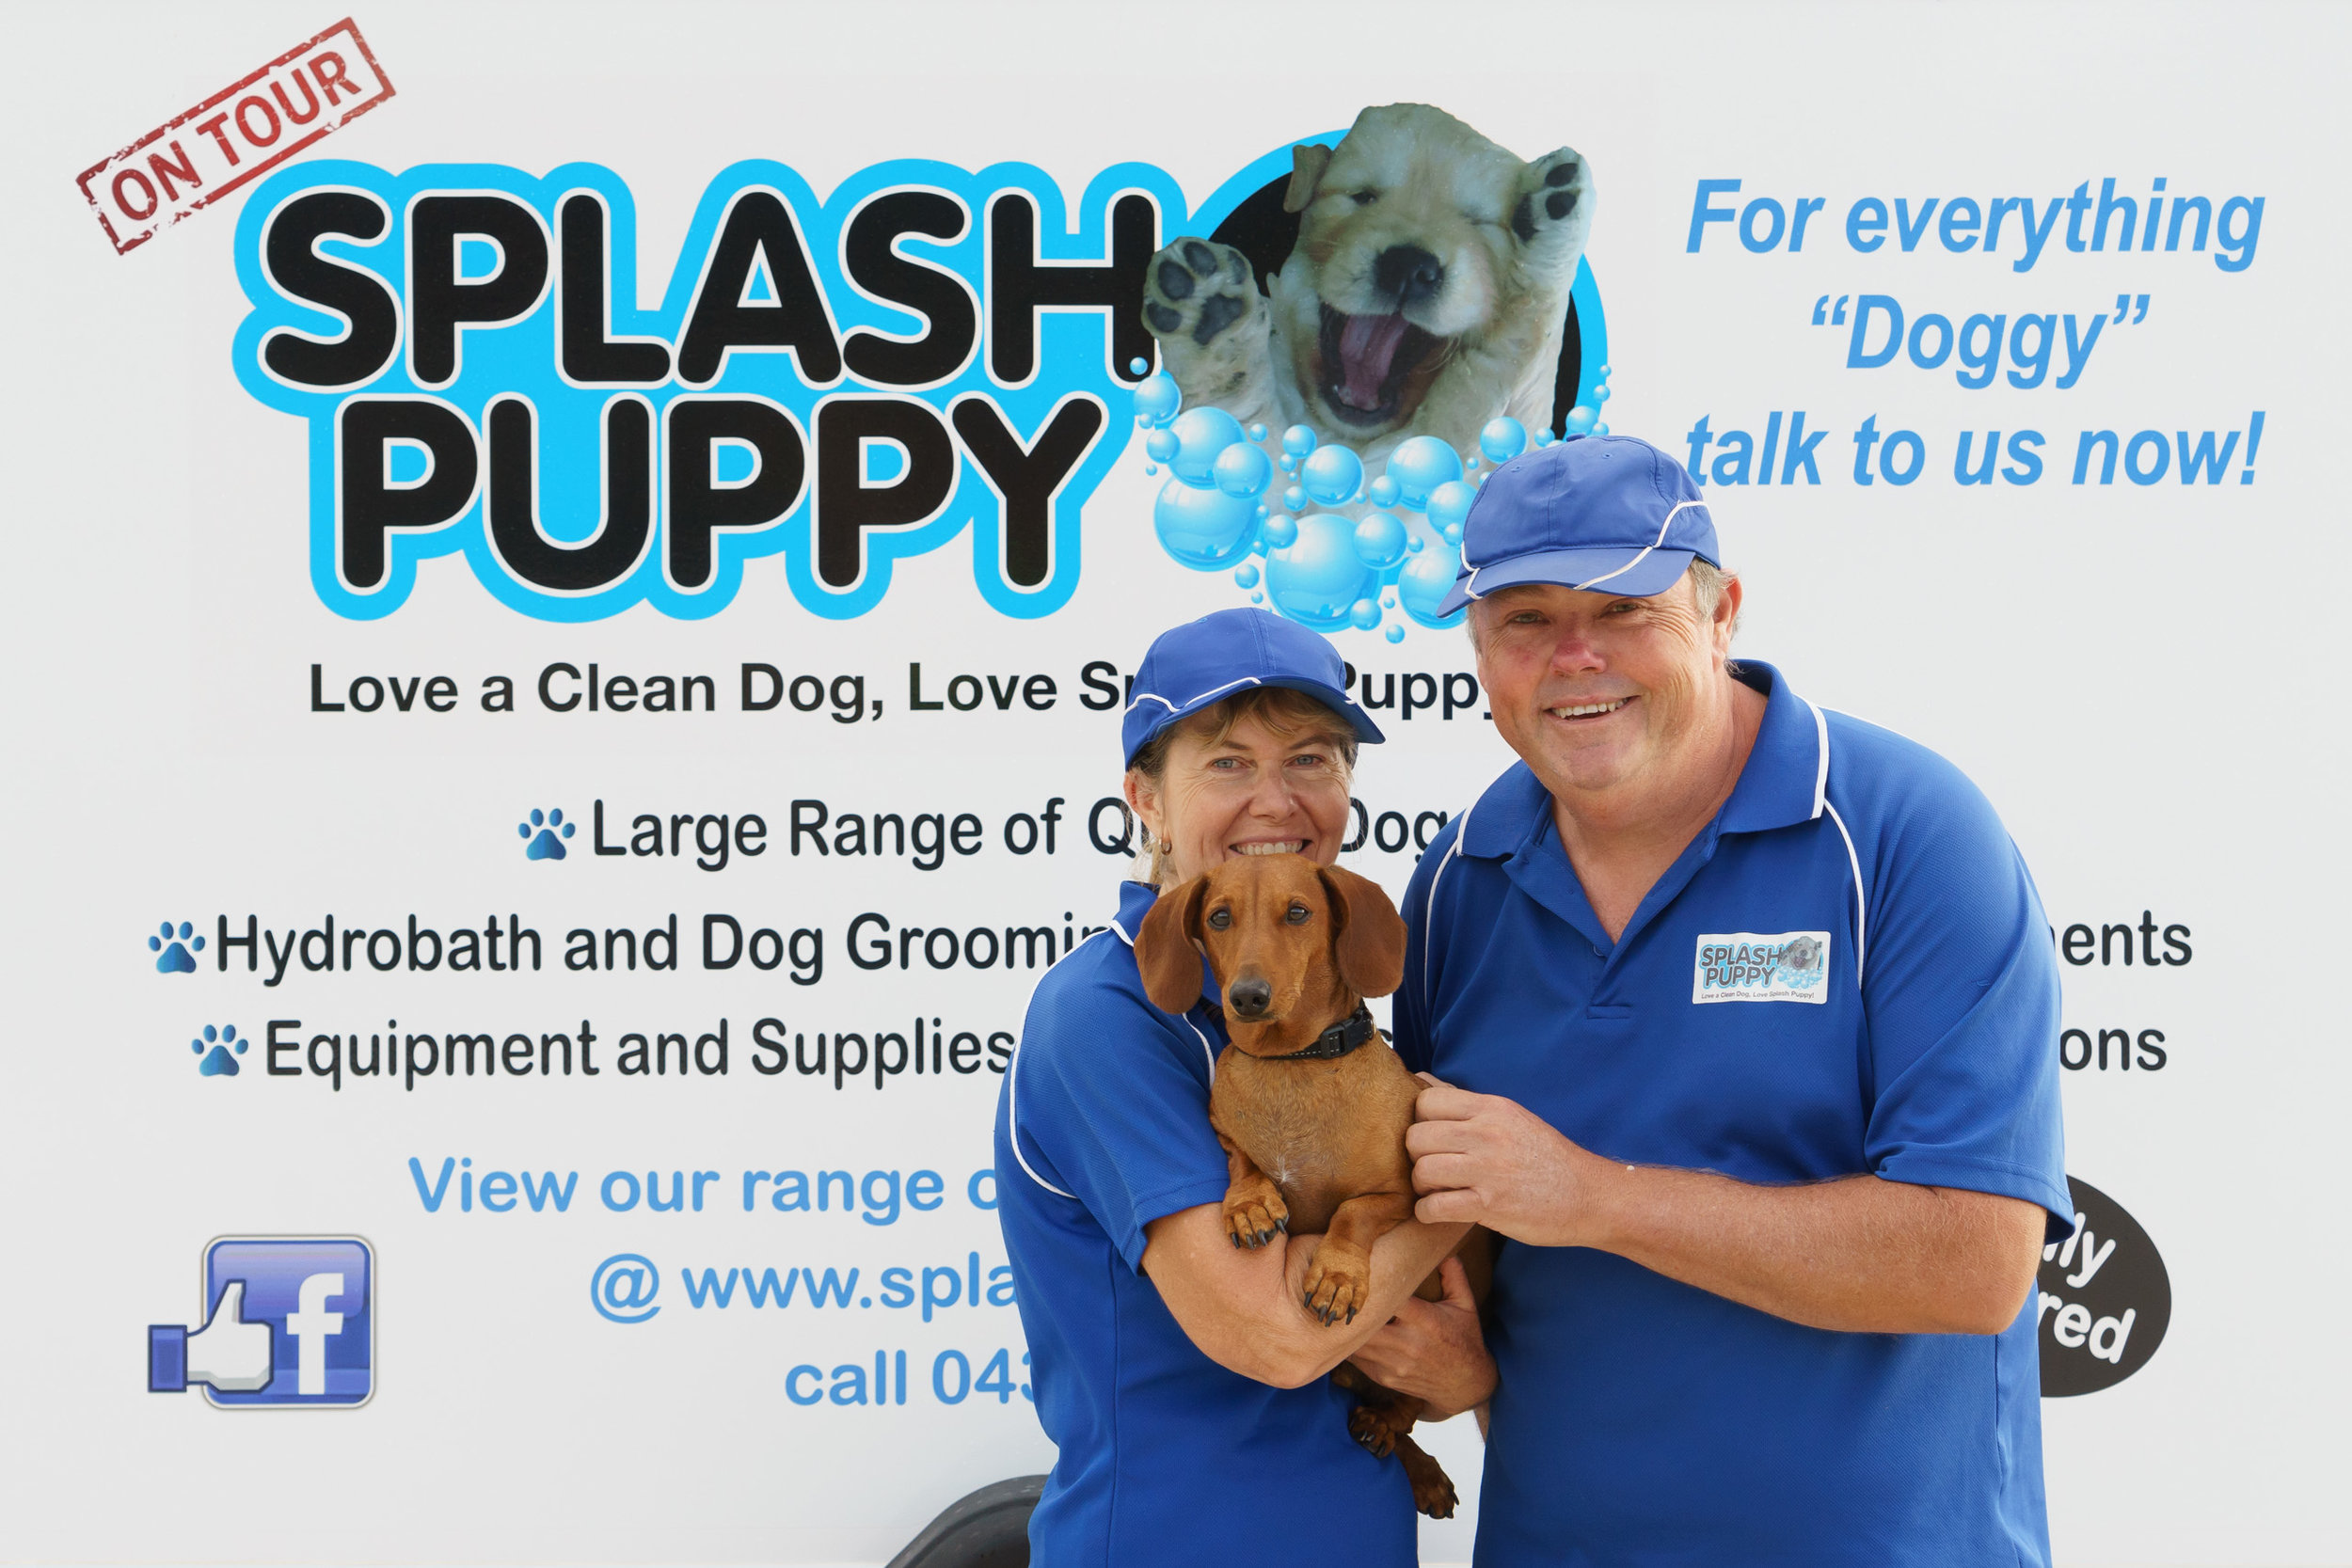 We both love dogs - and have 20 years combined experience working within the dog grooming industry